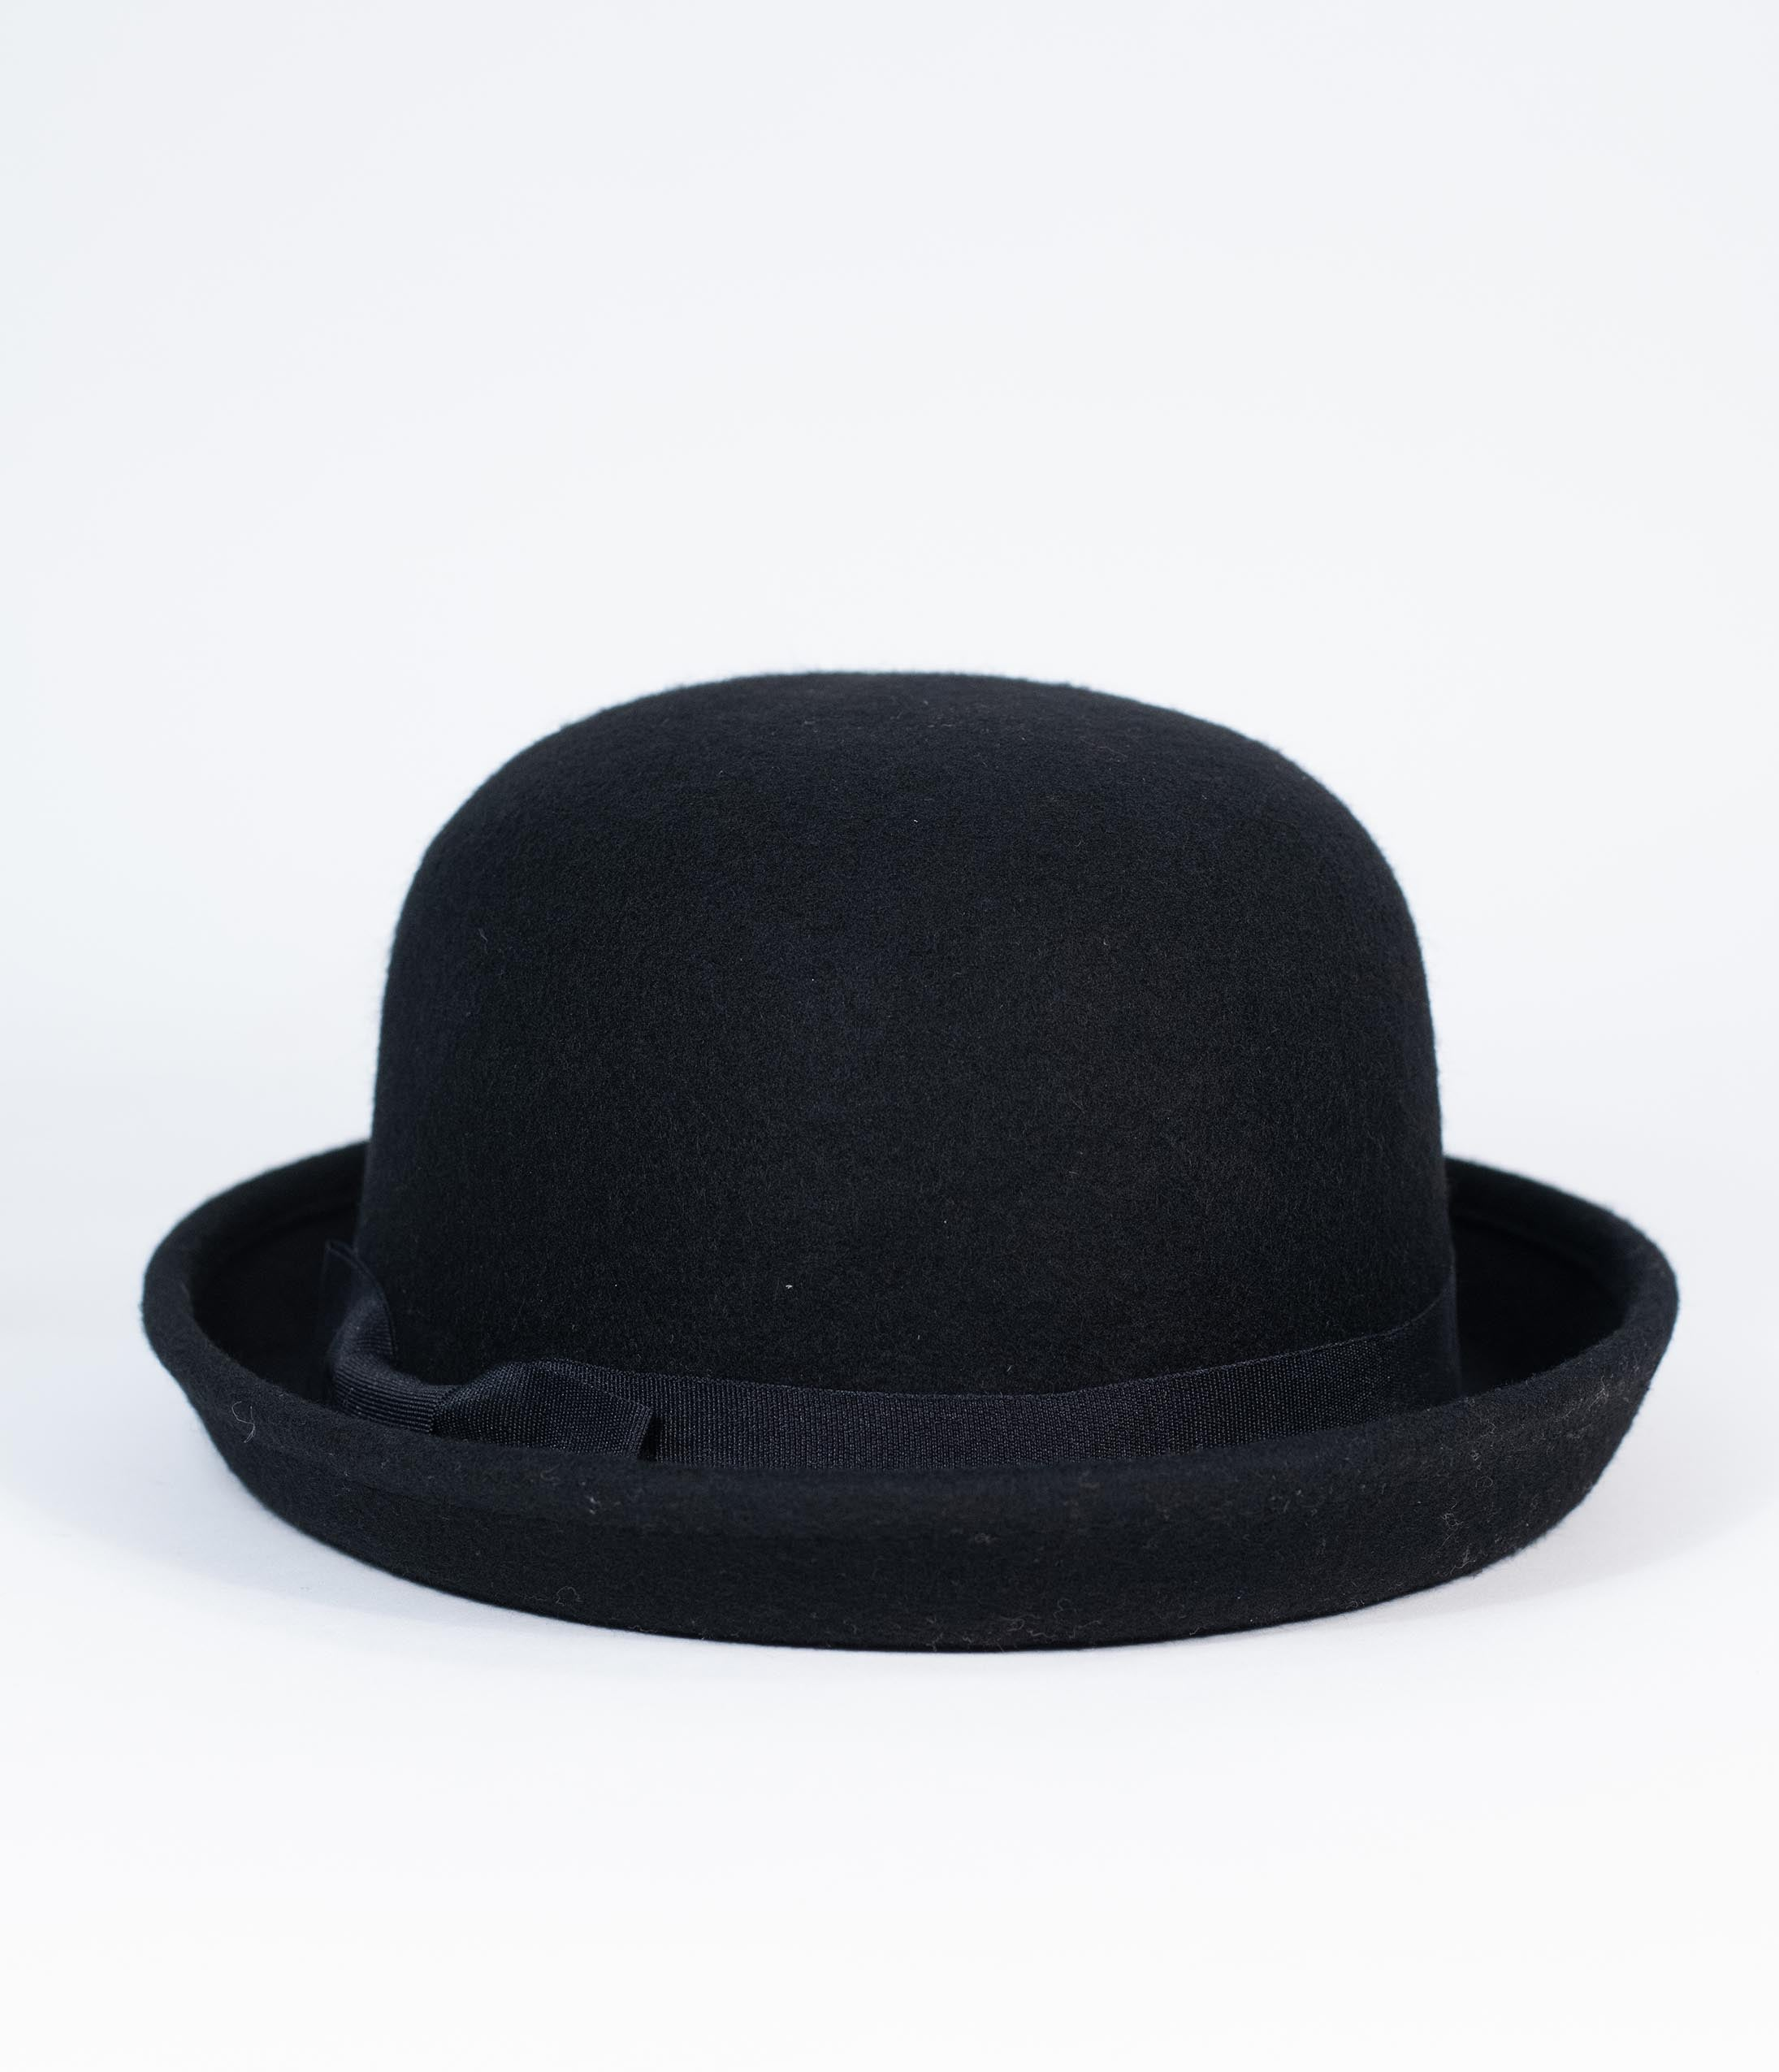 80s Hats, Caps, Visors, Buckets | Women and Men Retro Style Black Wool Bowler Hat $46.00 AT vintagedancer.com